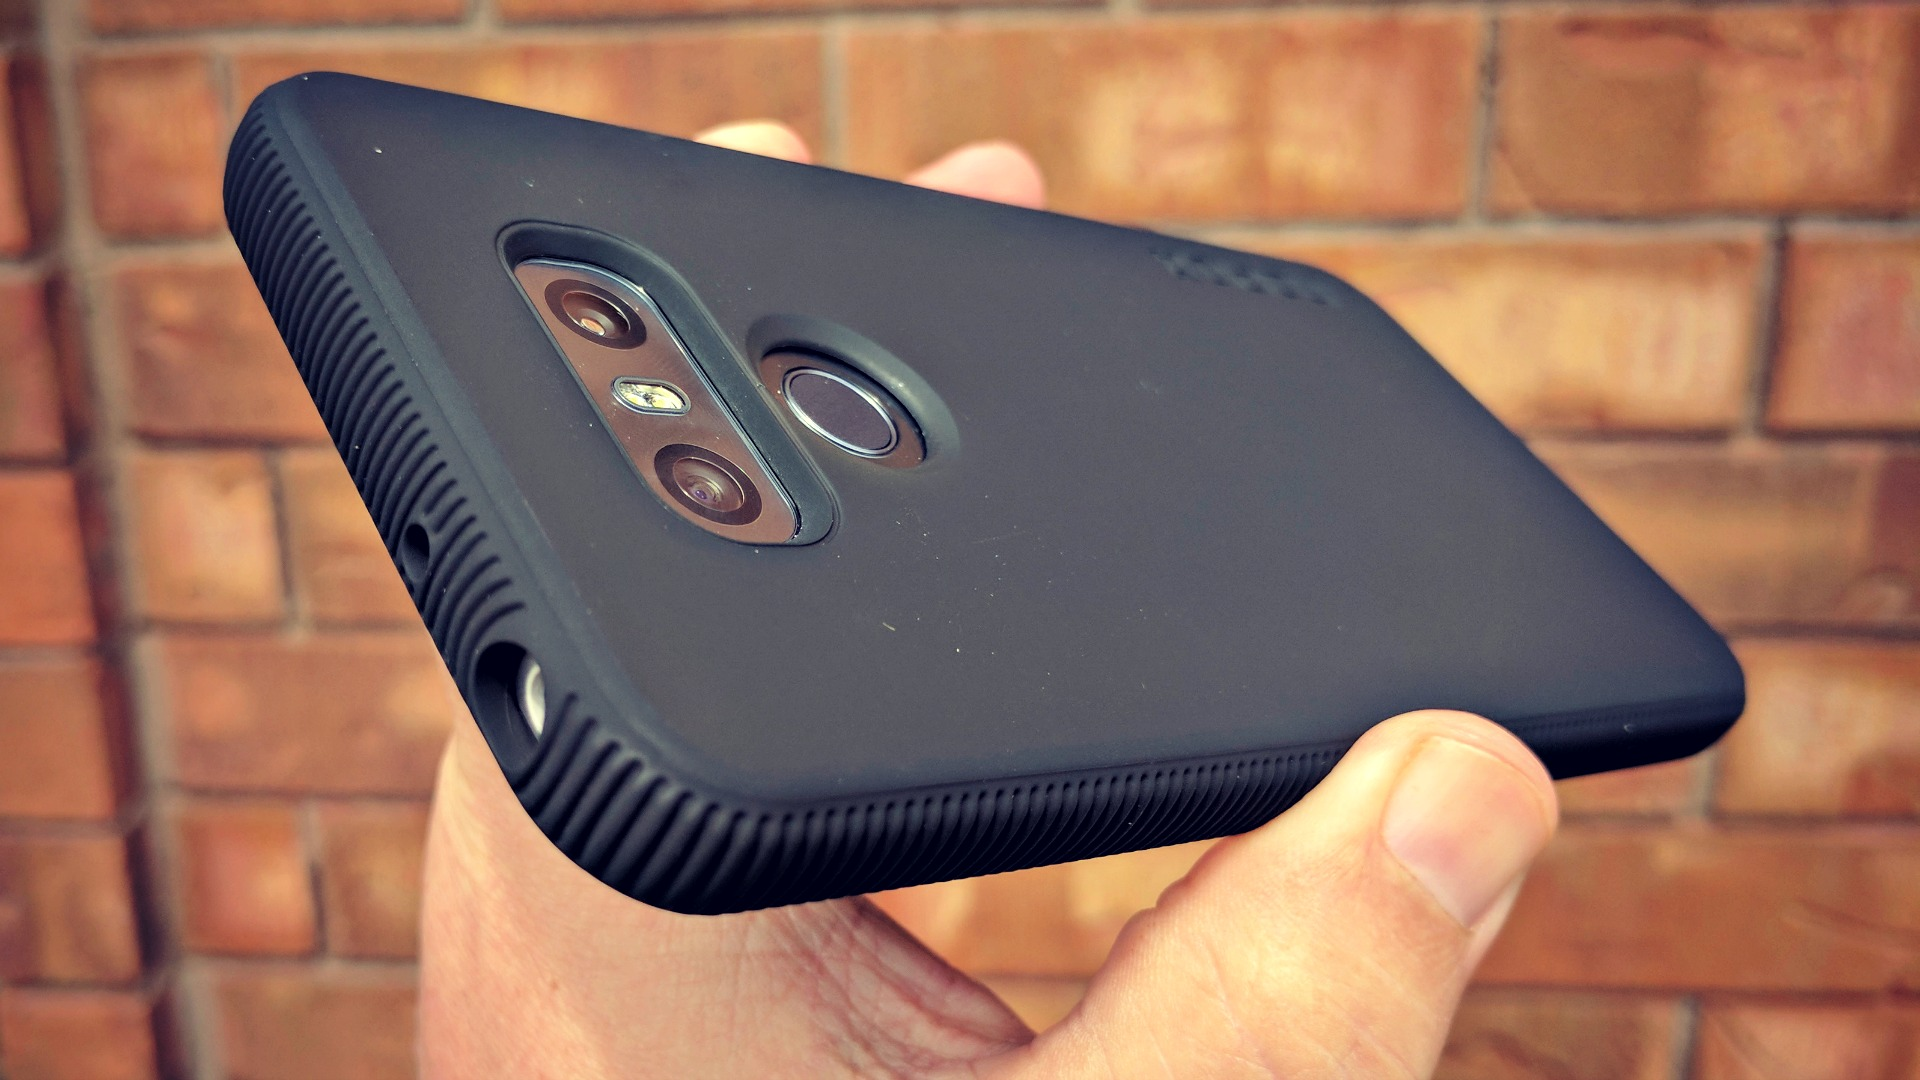 separation shoes 28df8 9a1a1 Gear Up: Incipio cases for LG G6 and other flagships